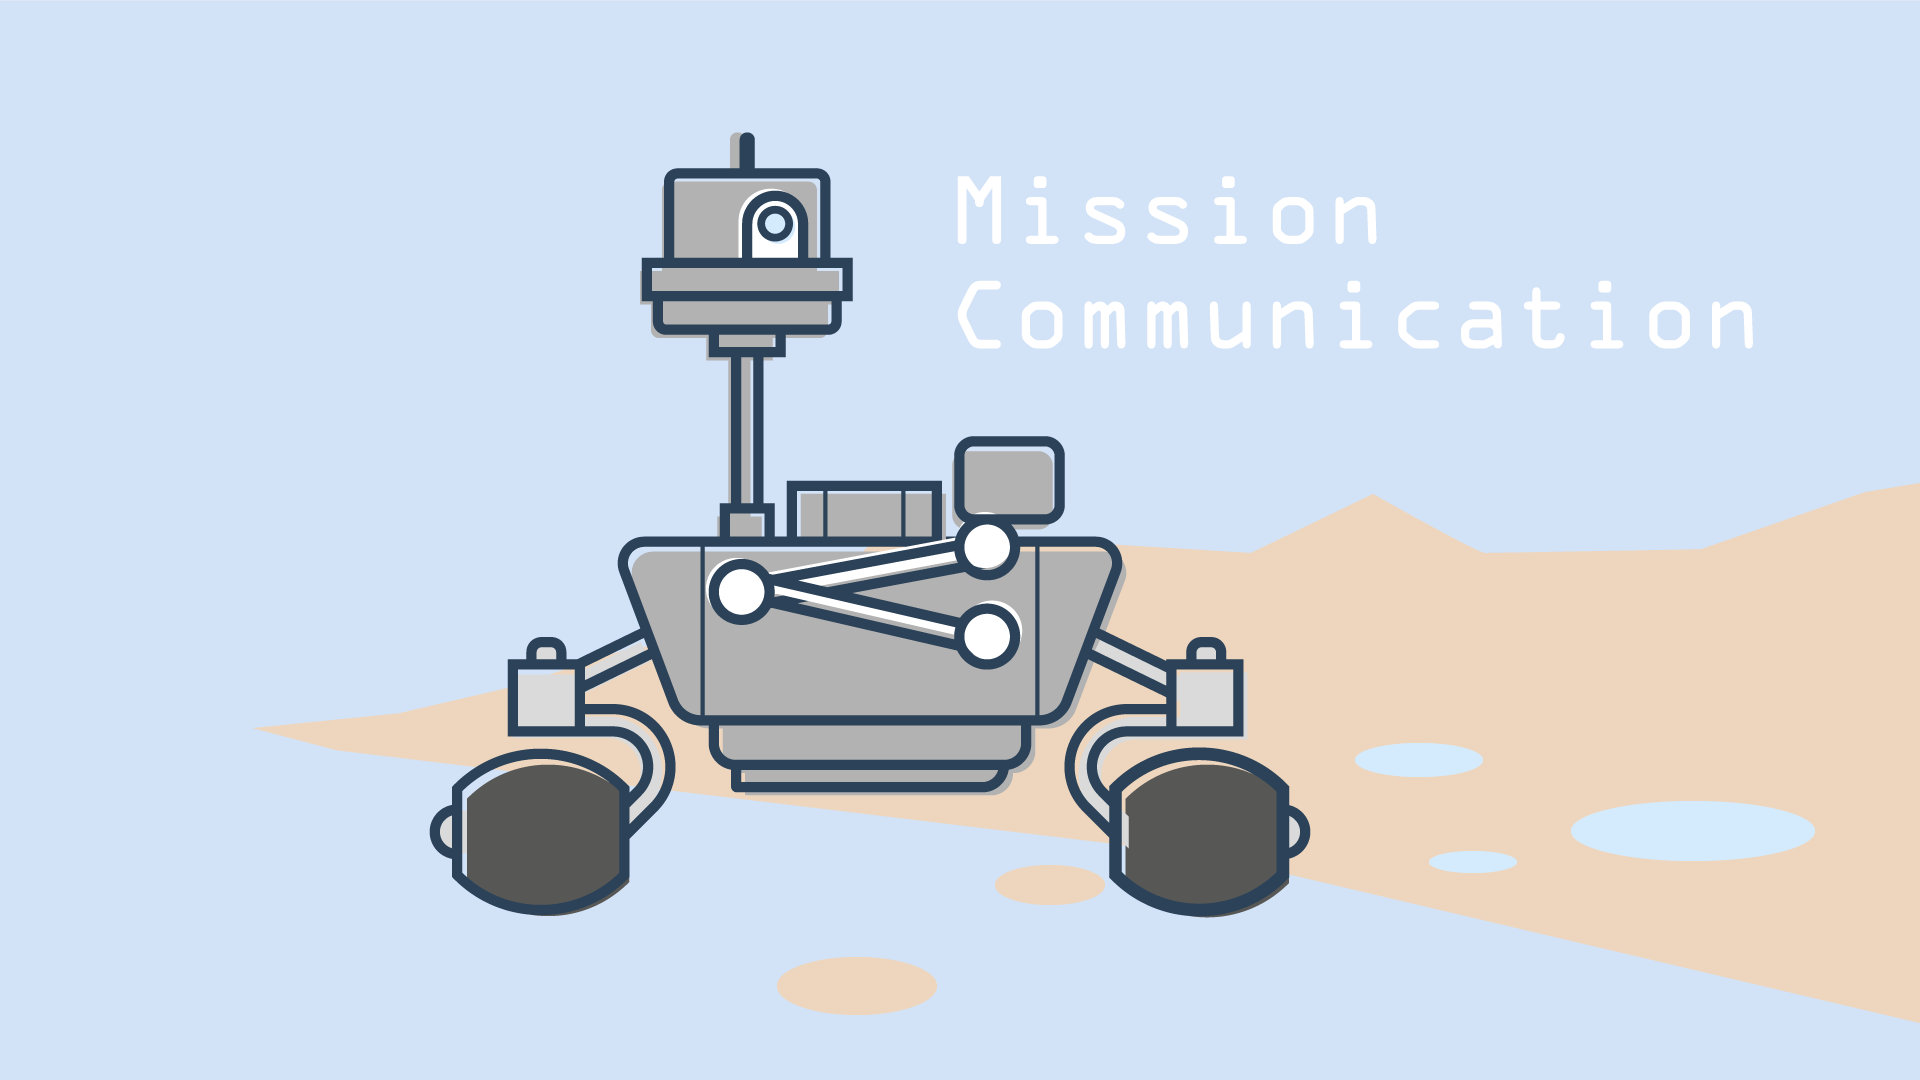 Icon of a Mars landing robot as a symbol for technology, expertise and flexibility, for which Orange Council stands.